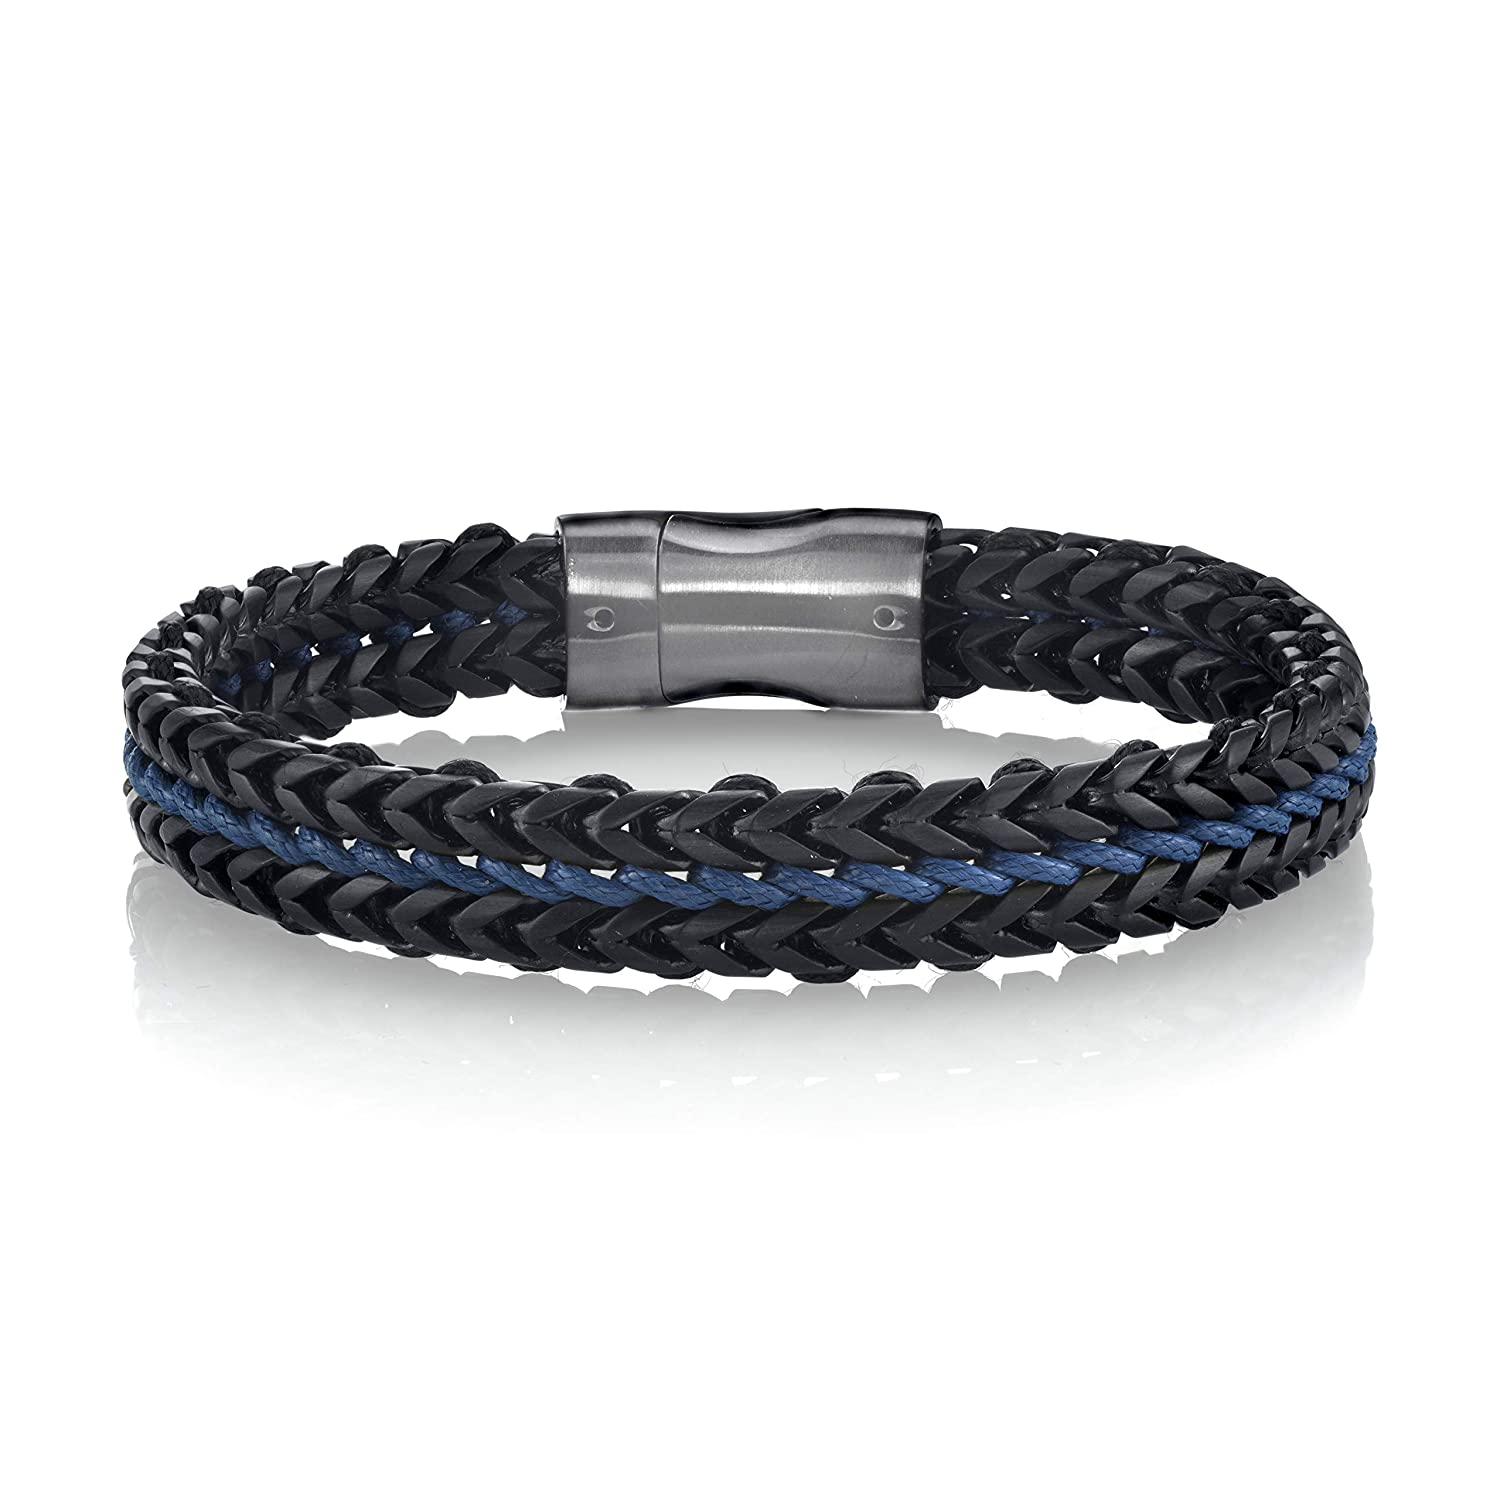 Amazon.com: Spartan - Pulsera de acero inoxidable para ...